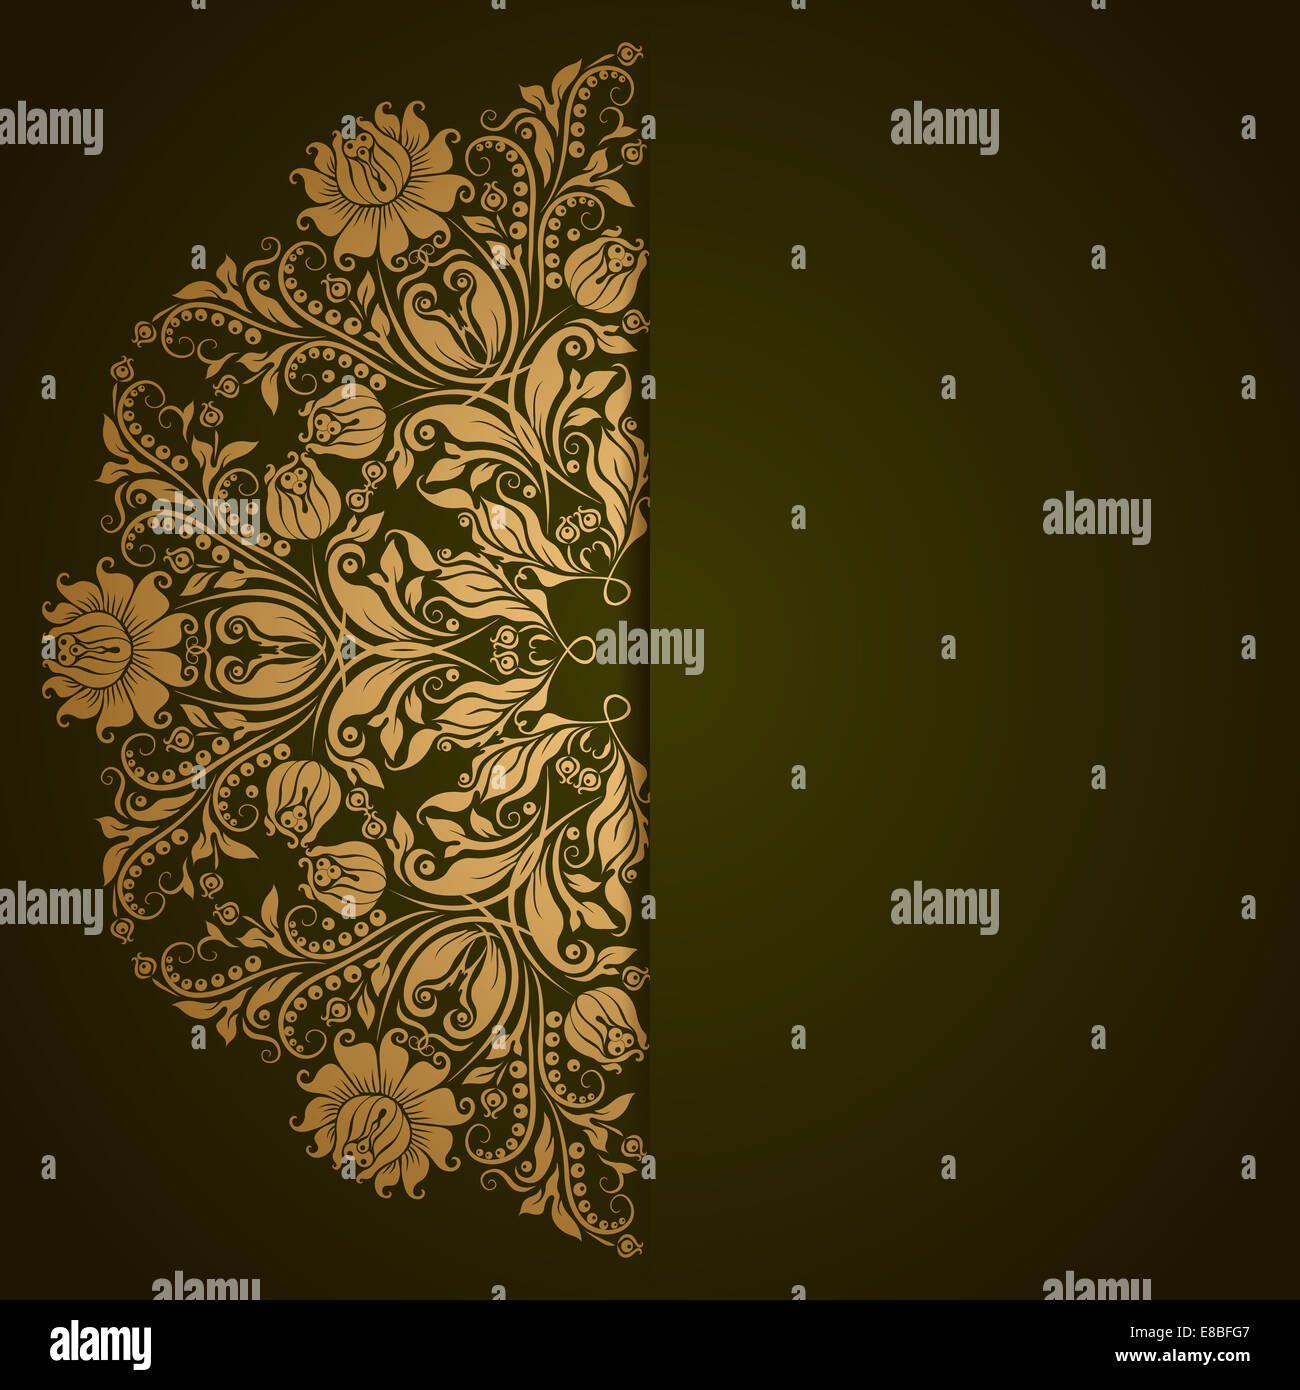 Elegant background with lace ornament - Stock Image